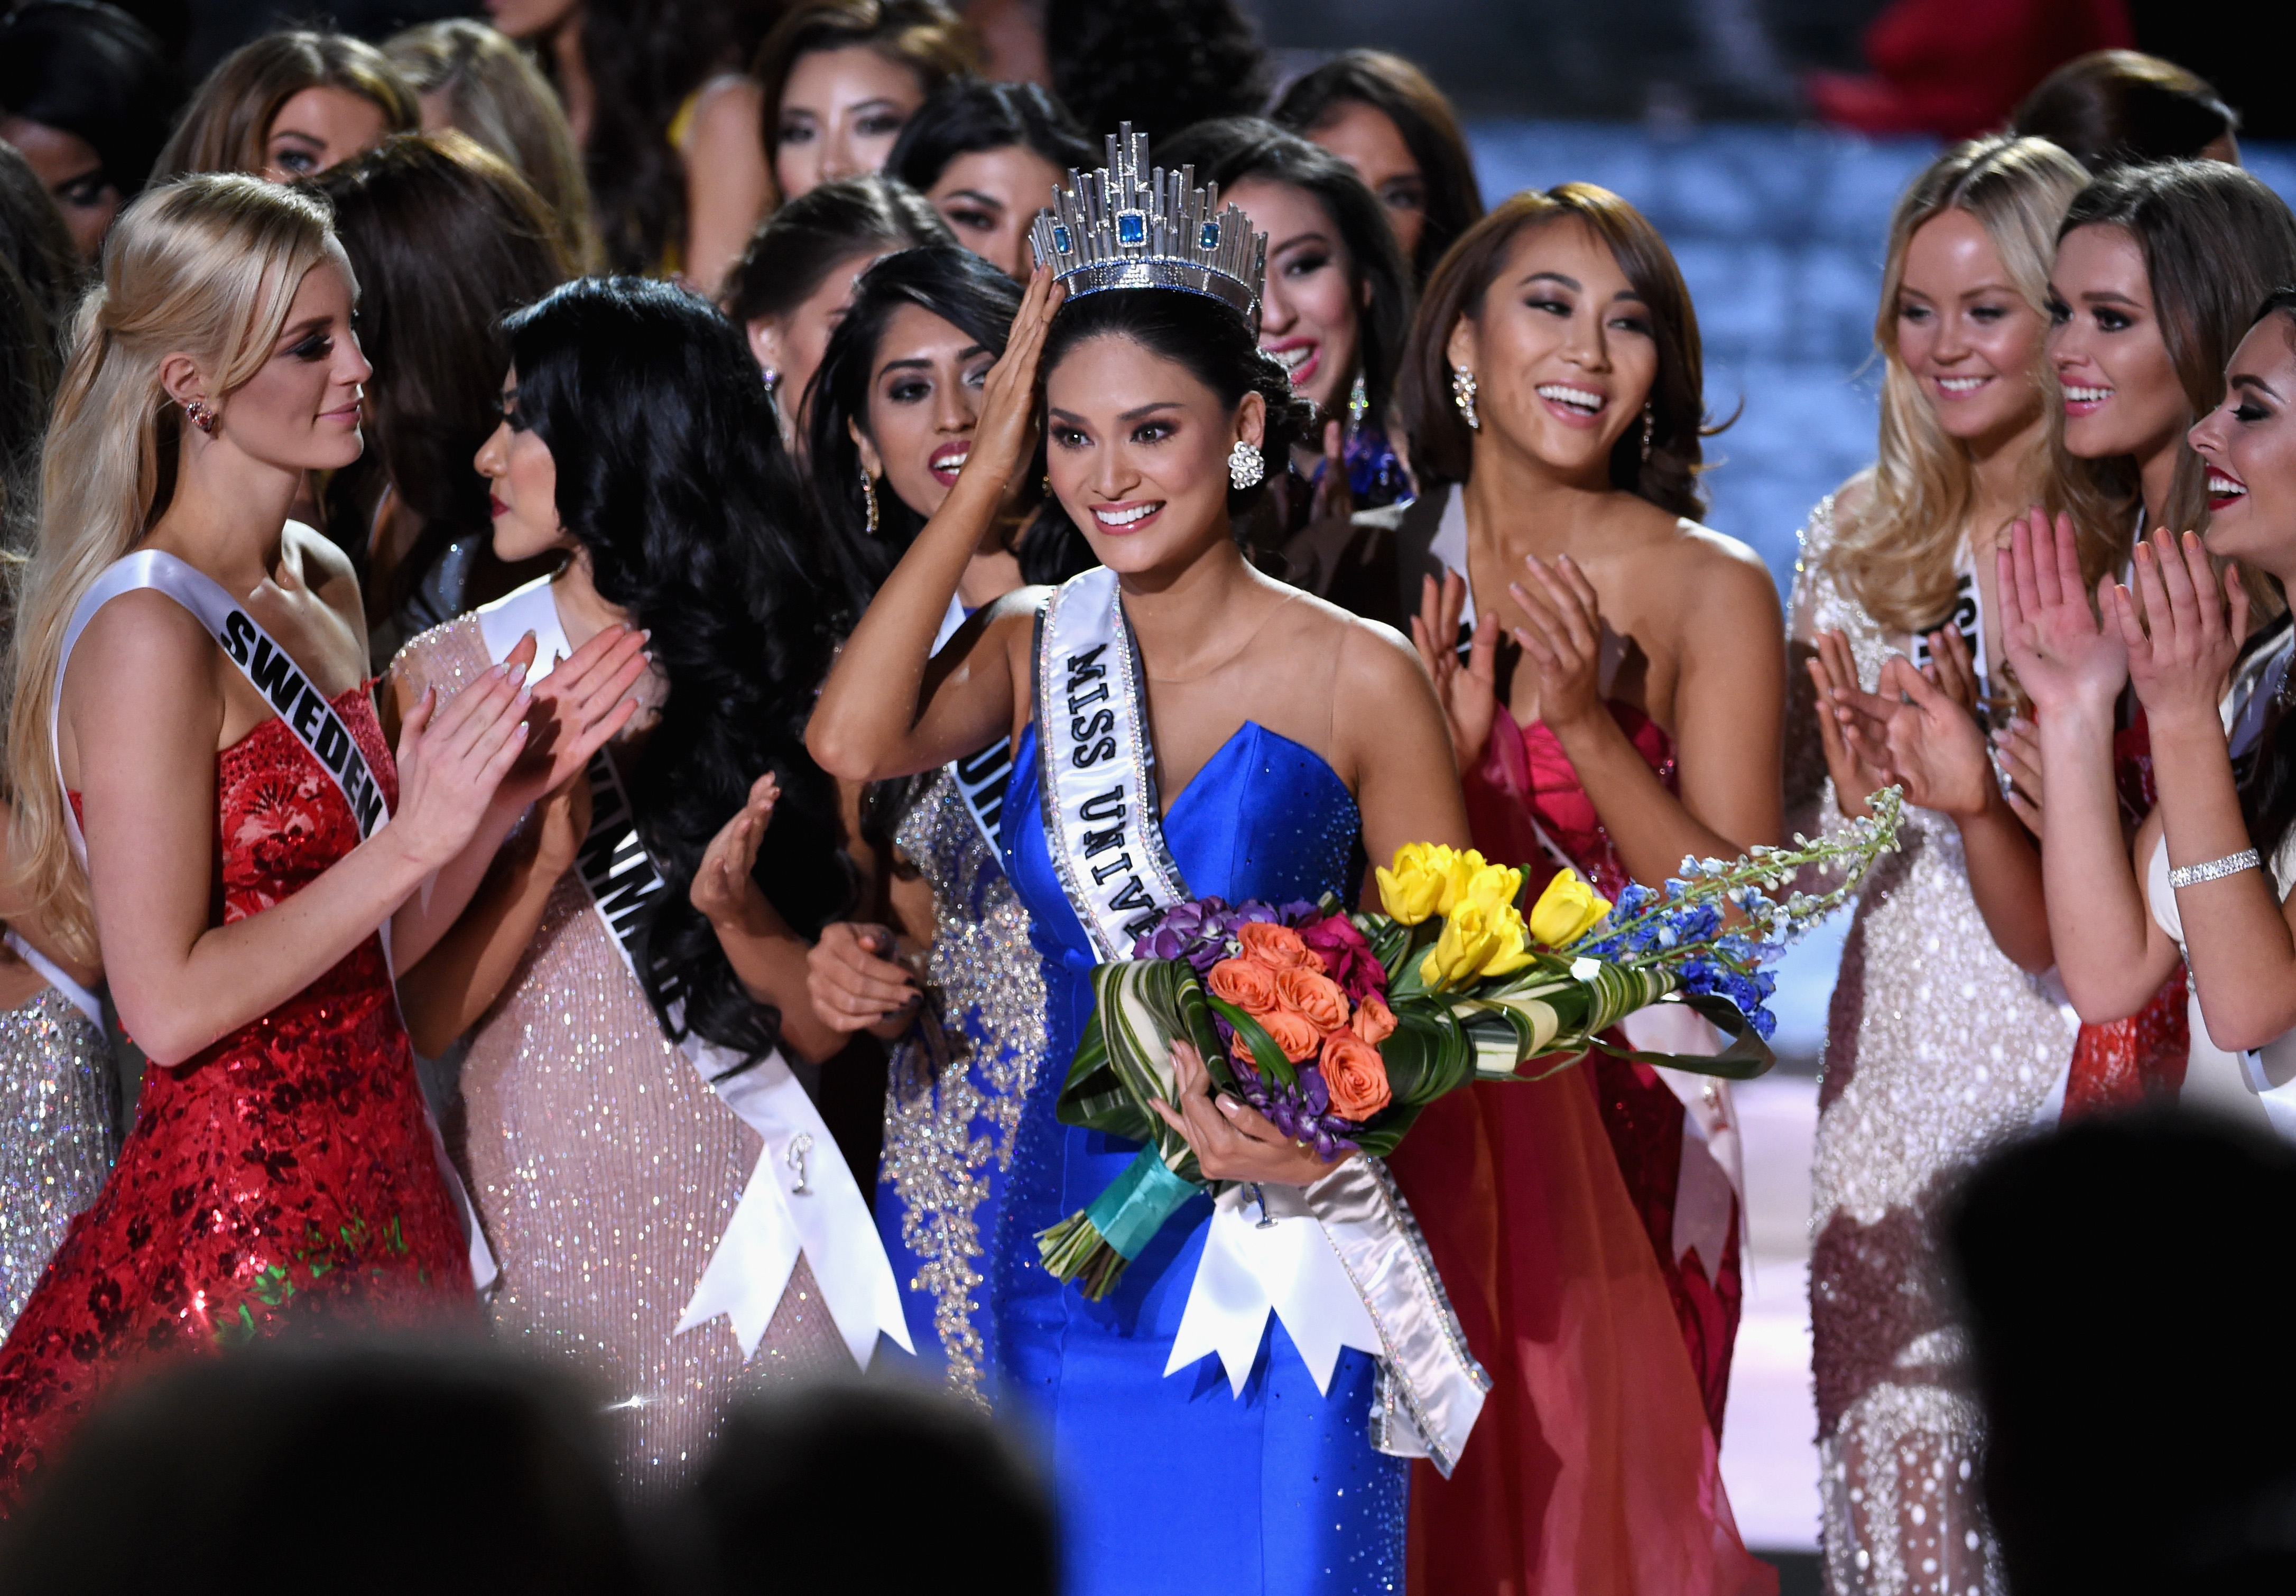 Miss Philippines 2015, Pia Alonzo Wurtzbach, who was mistakenly named as First Runner-up, reacts with other contestants after being named the 2015 Miss Universe during the 2015 Miss Universe Pageant on Dec. 20, 2015 in Las Vegas.